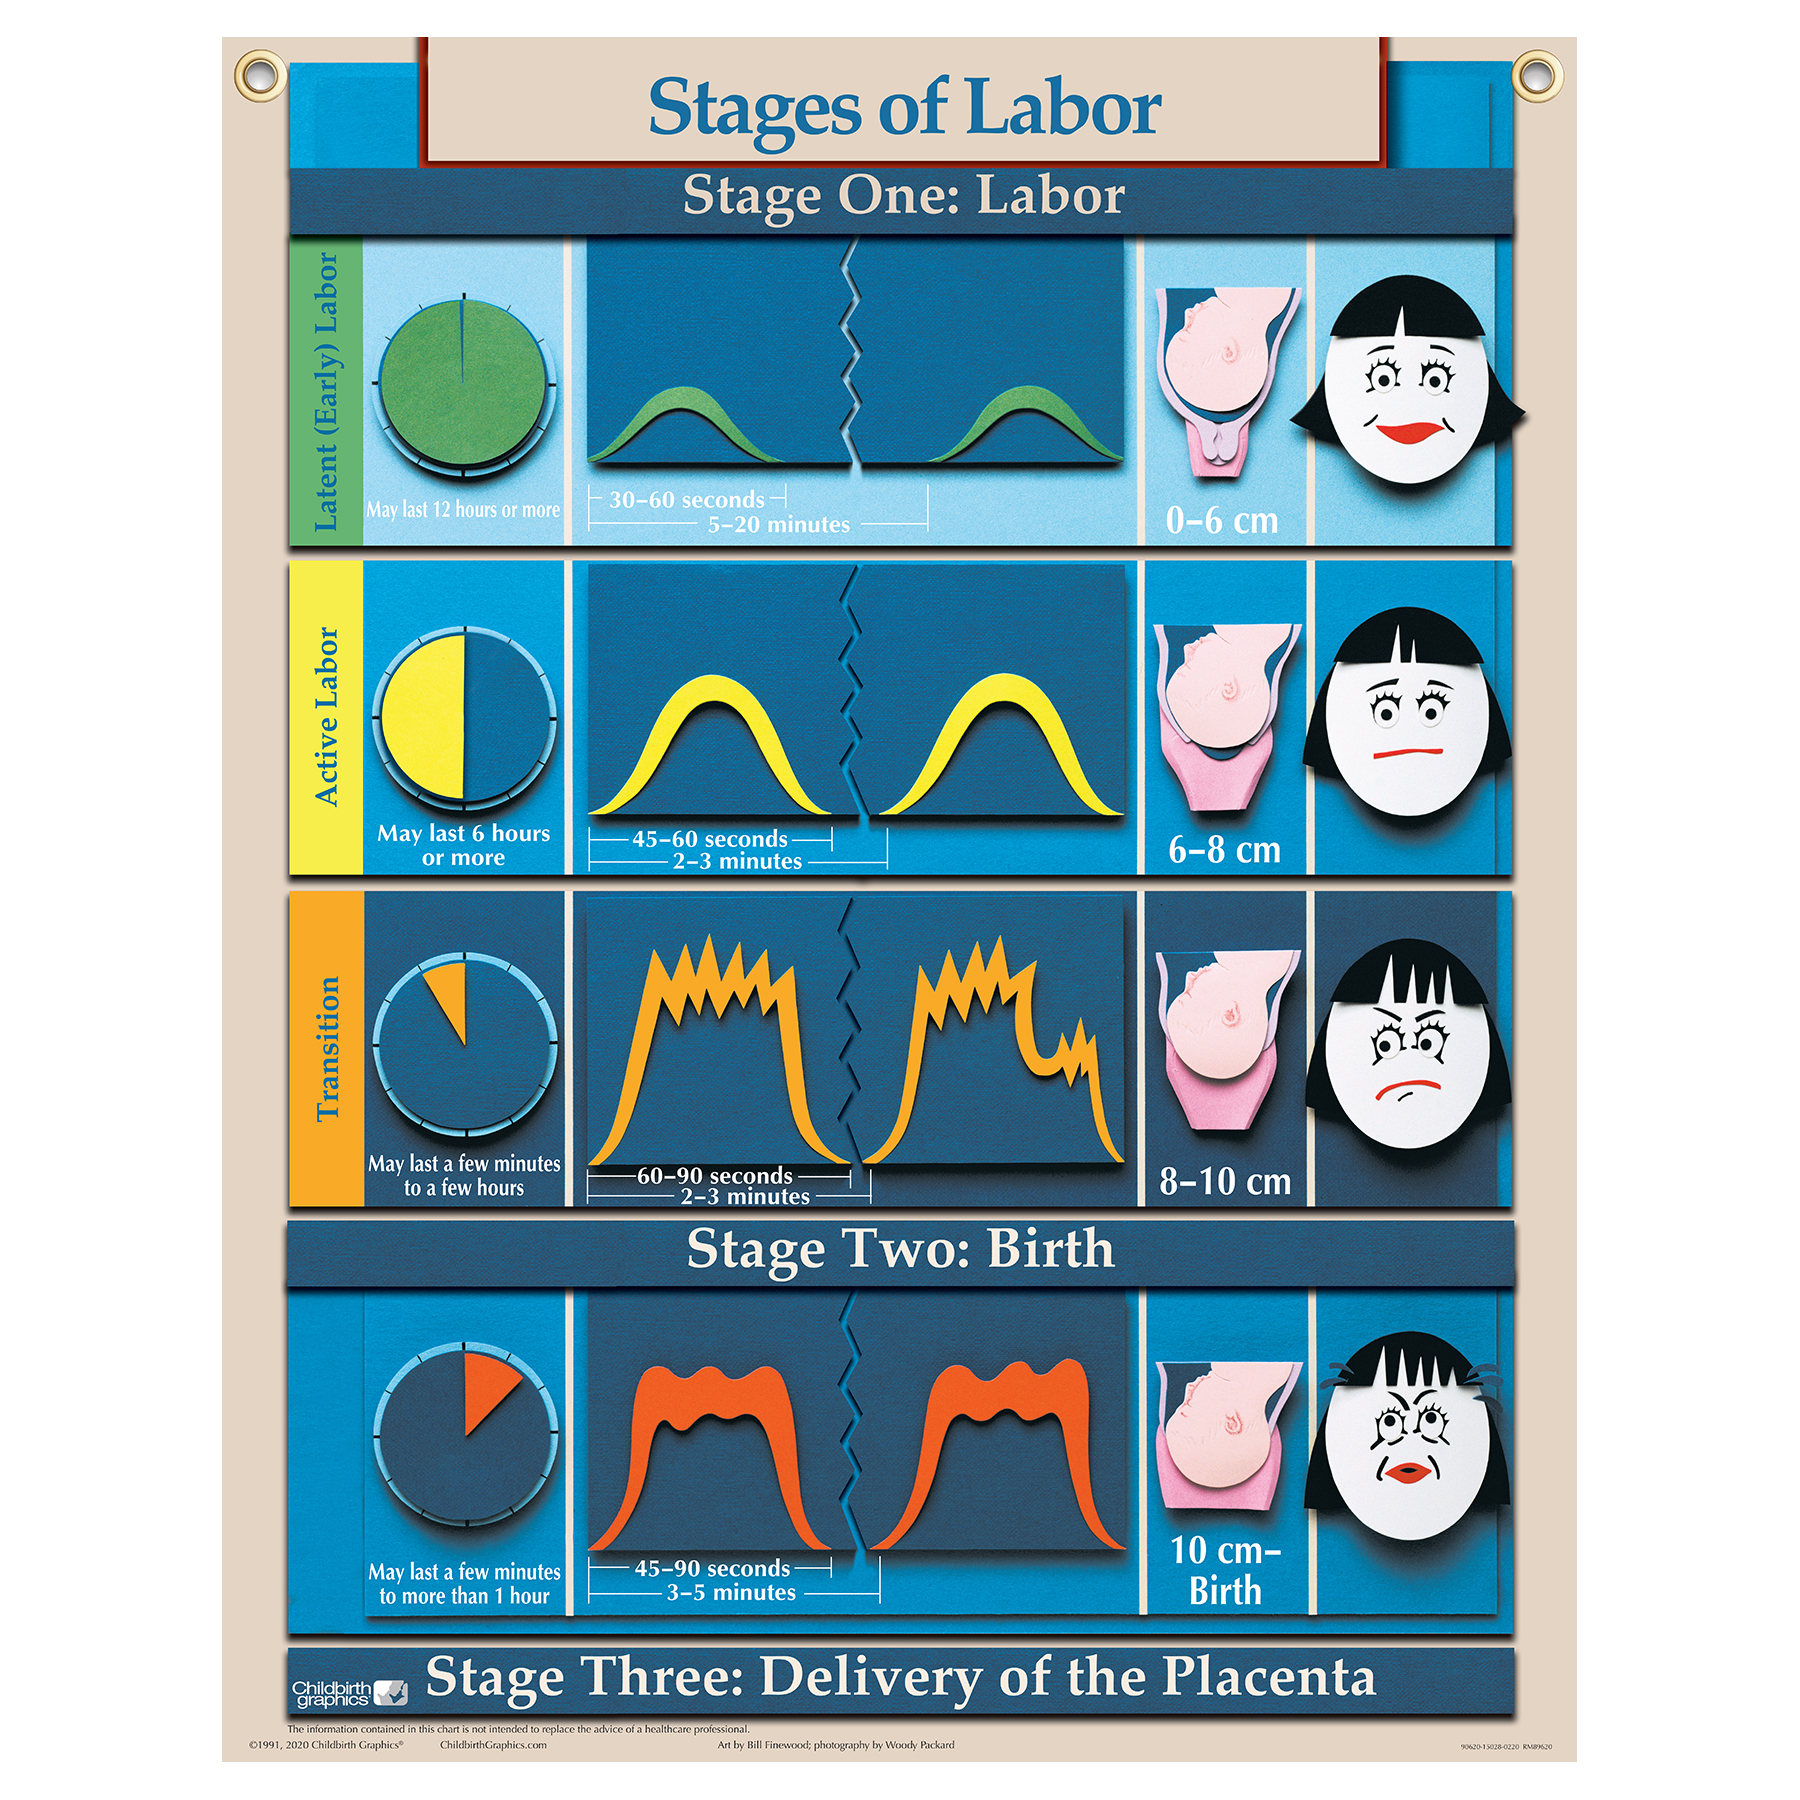 stages of labour The second stage of labour is from when your cervix is fully dilated to the time your baby is born the contractions during this time are regular and spaced apart as each contraction builds to a peak, you may feel the urge to bear down and push the sensation of the baby moving.